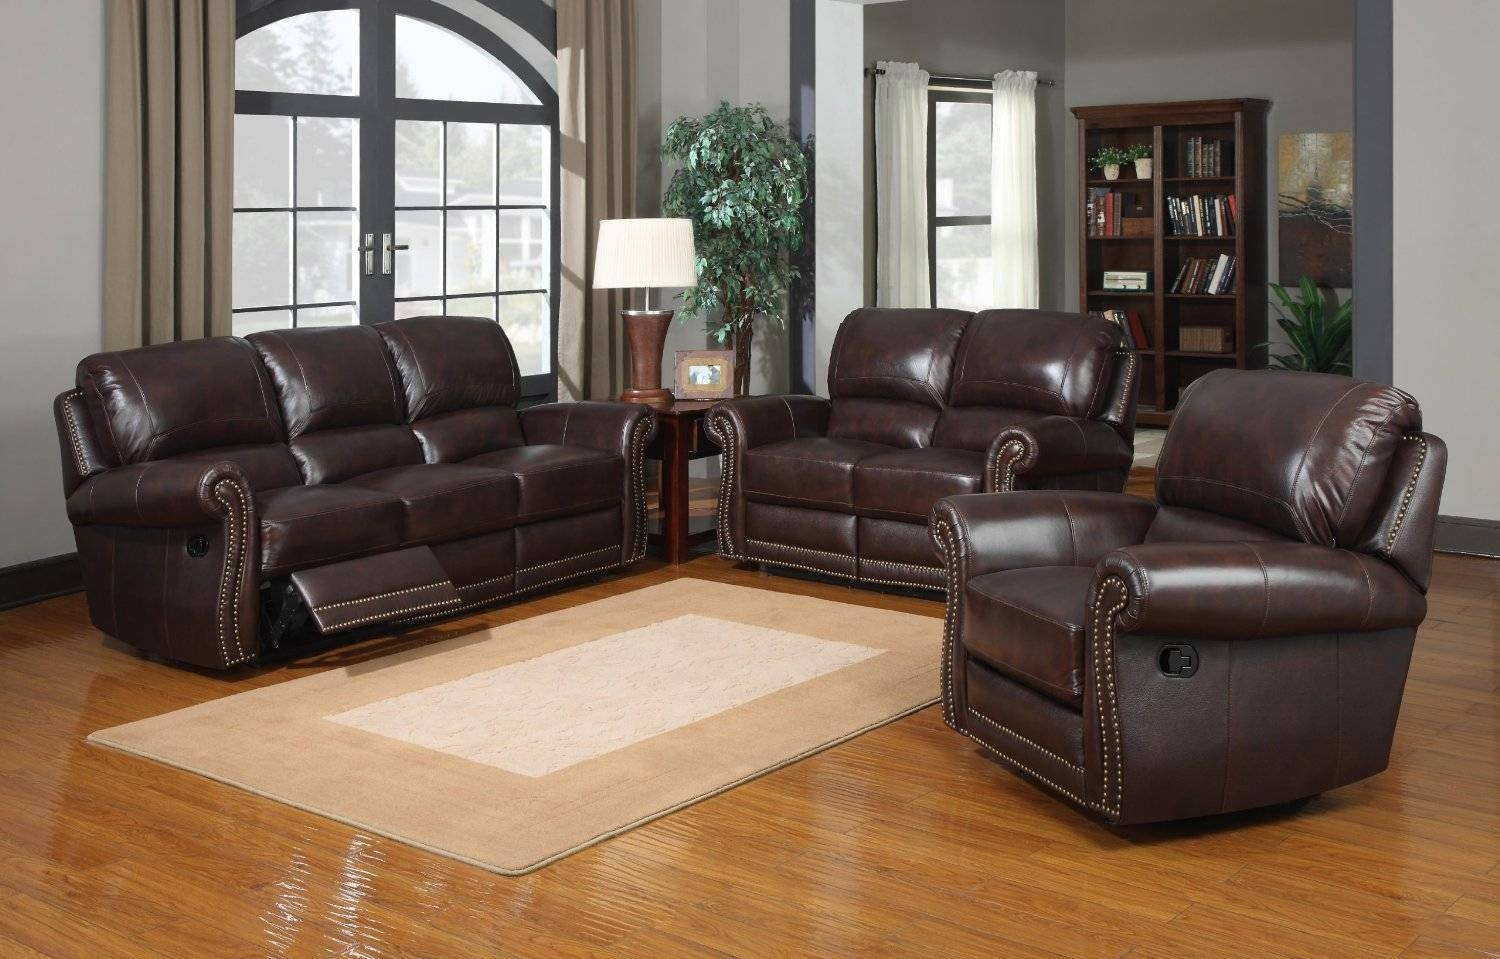 Furniture: Brown Benchcraft Furniture Sofa Decor With Glass And regarding Berkline Leather Sofas (Image 11 of 15)